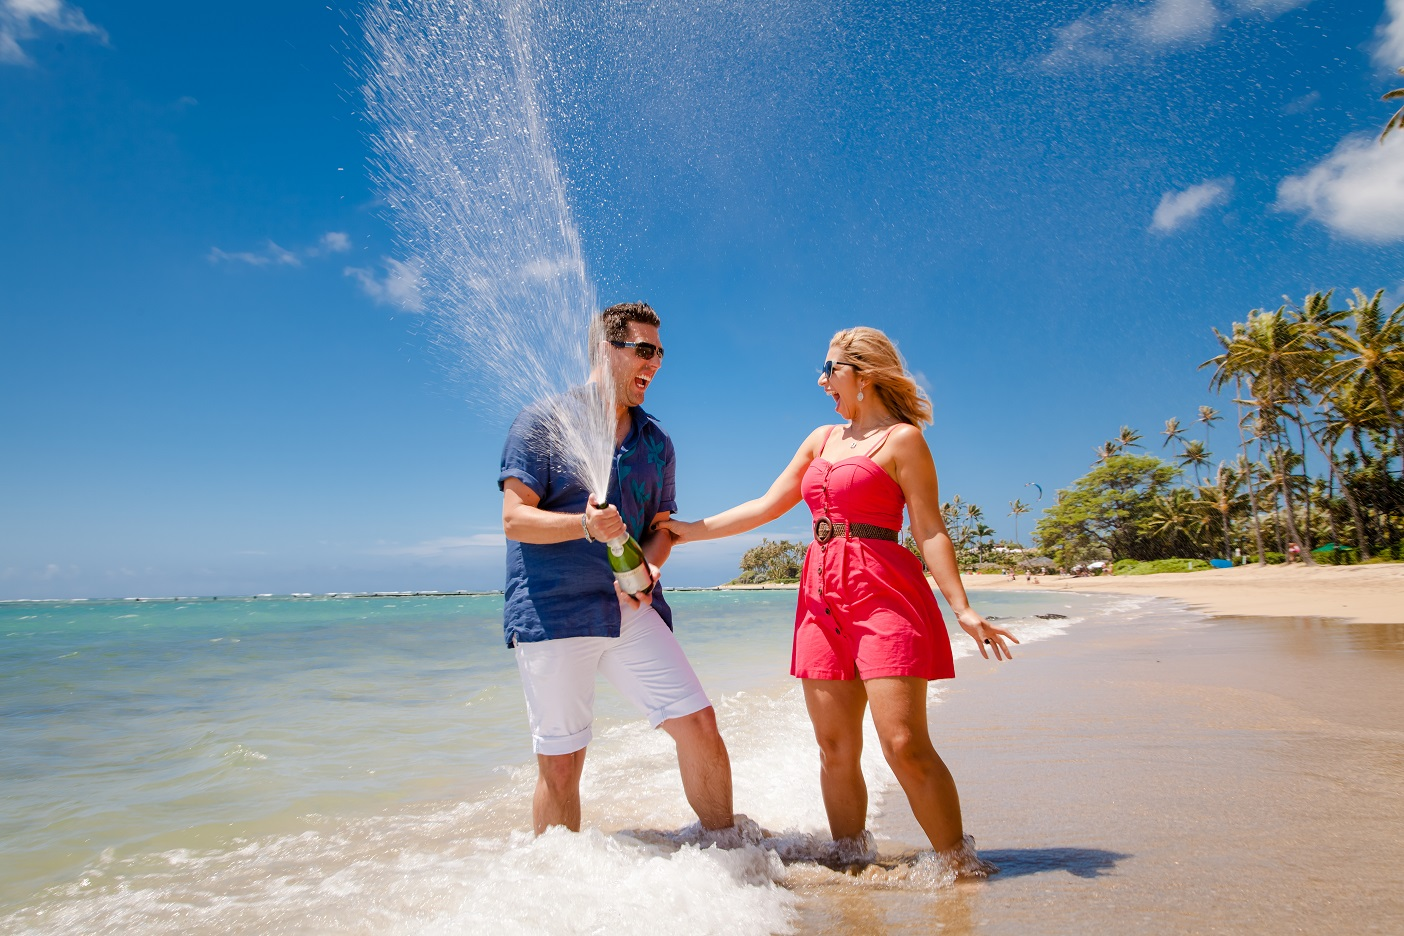 oahu hawaii romantic surprise proposal